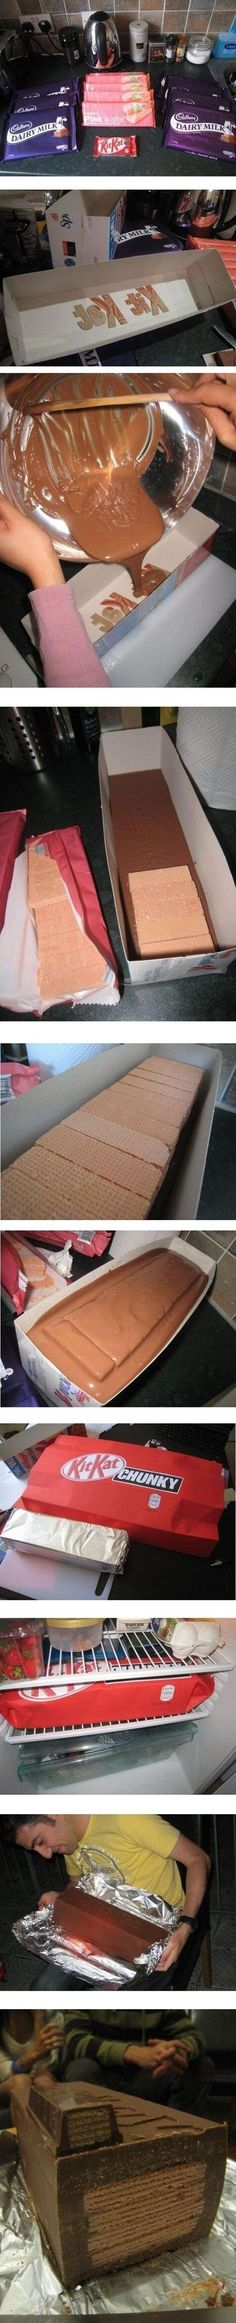 HOW TO MAKE: A GIANT KIT KAT BAR! I want this for my next birthday!